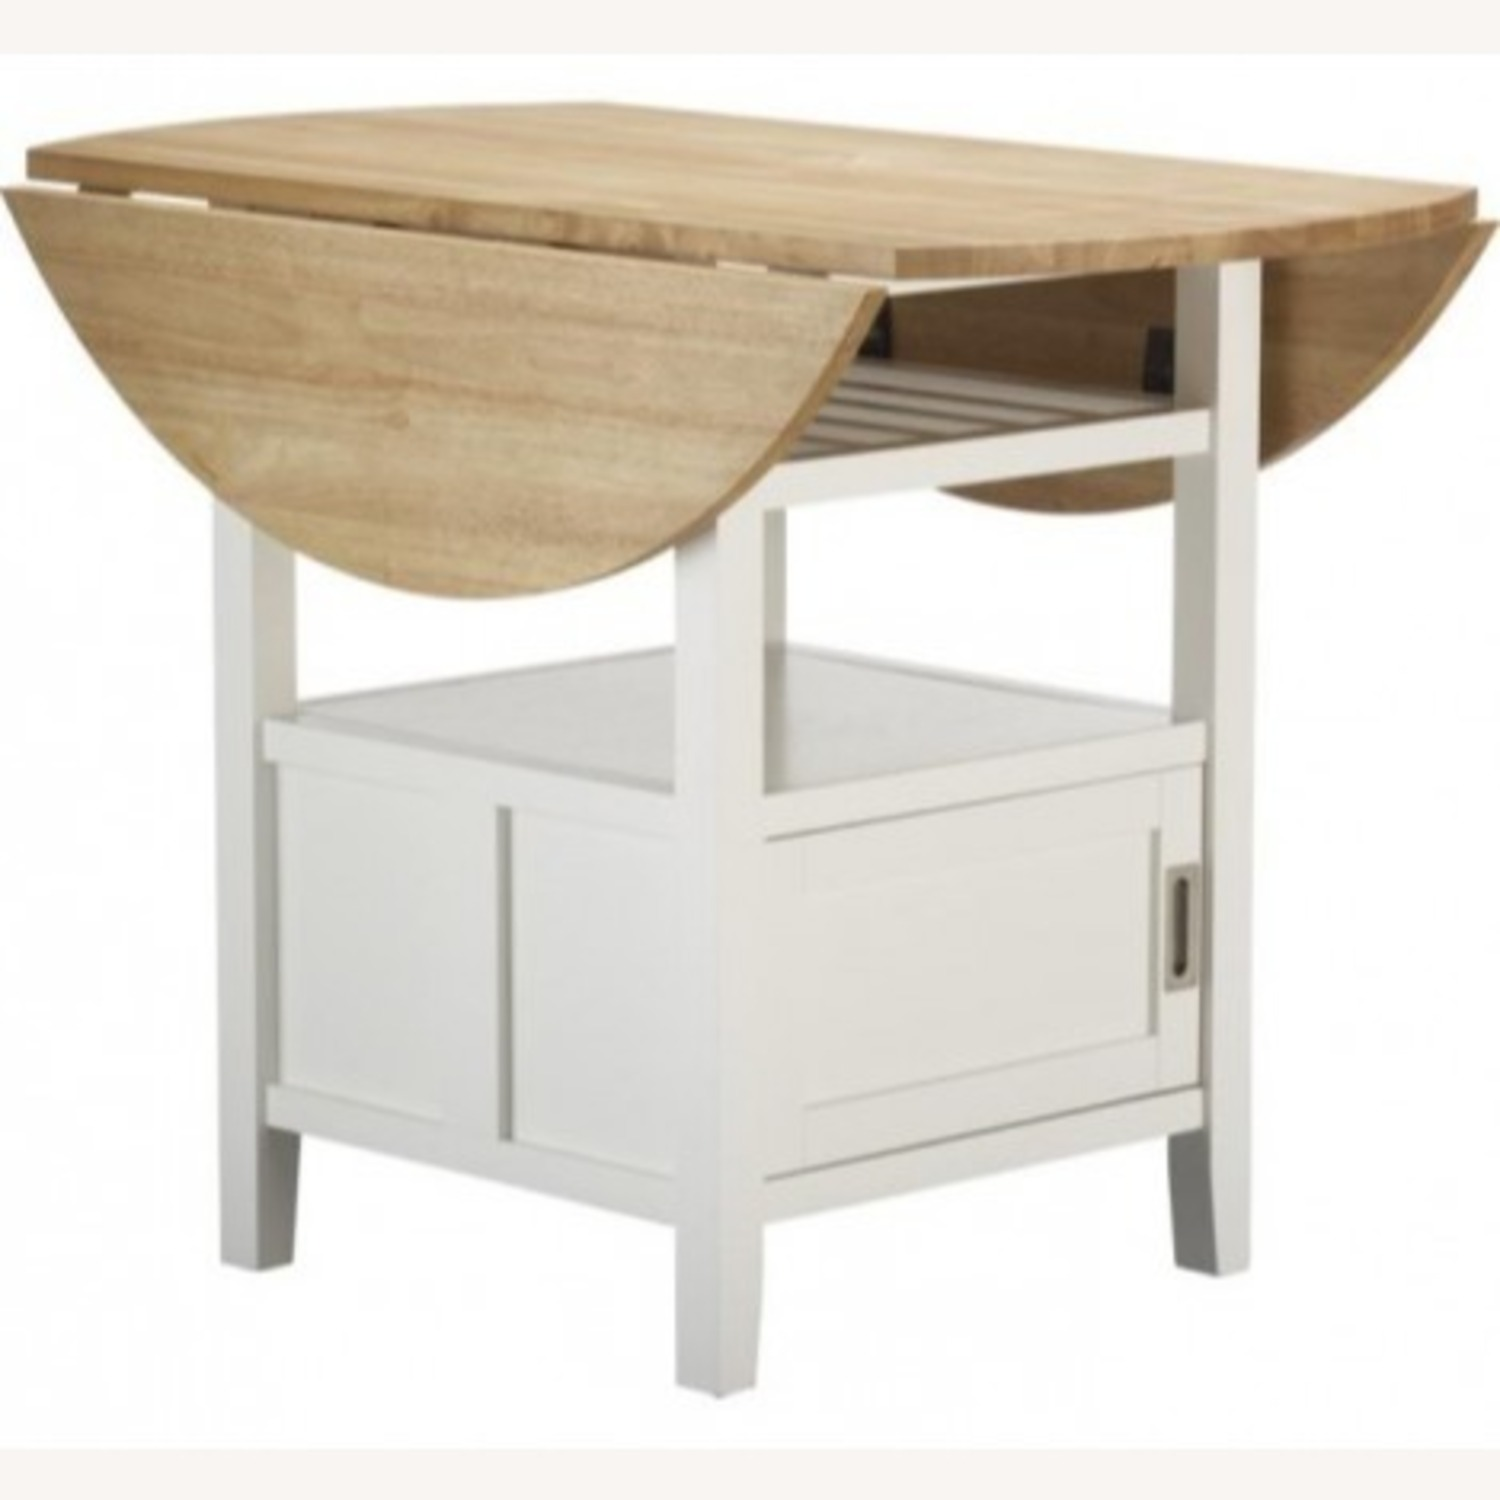 Crate & Barrel Belmont High Dining Table - image-0